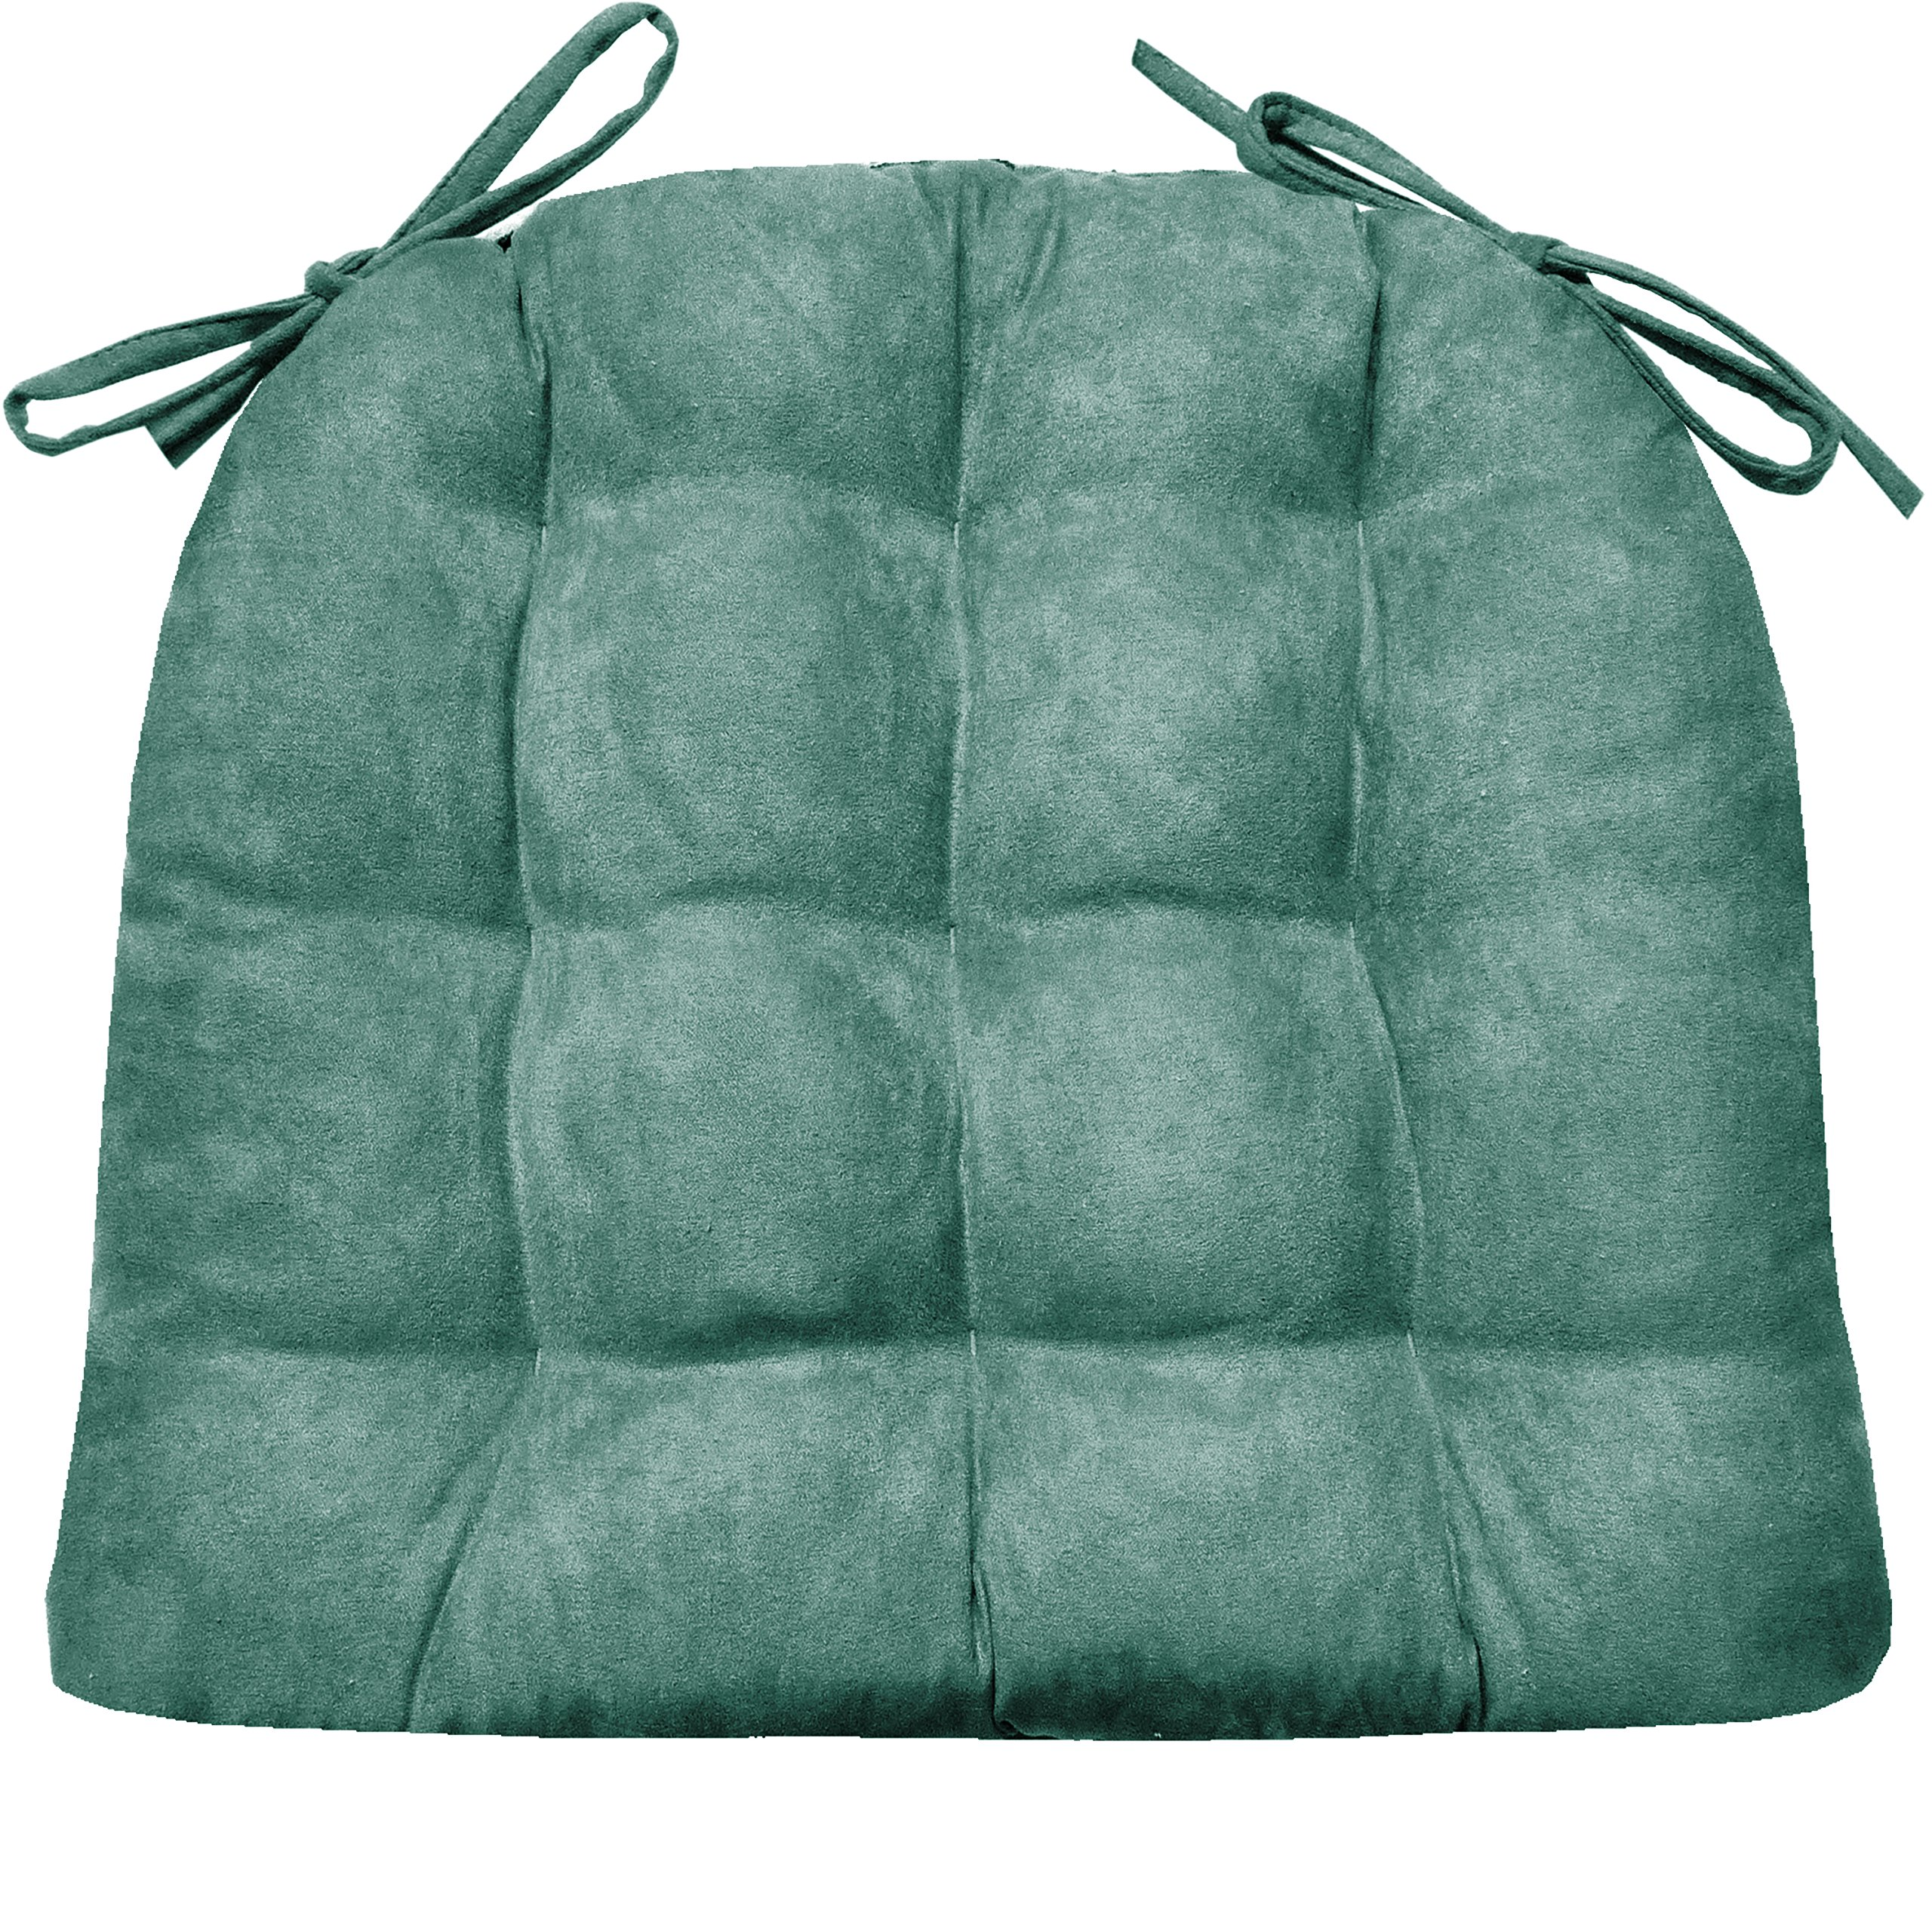 Barnett Products Dining Chair Pad with Ties - Microsuede Turquoise - Size Standard - Reversible, Latex Foam Fill, Machine Washable, Micro Fiber Ultra Suede (Teal)